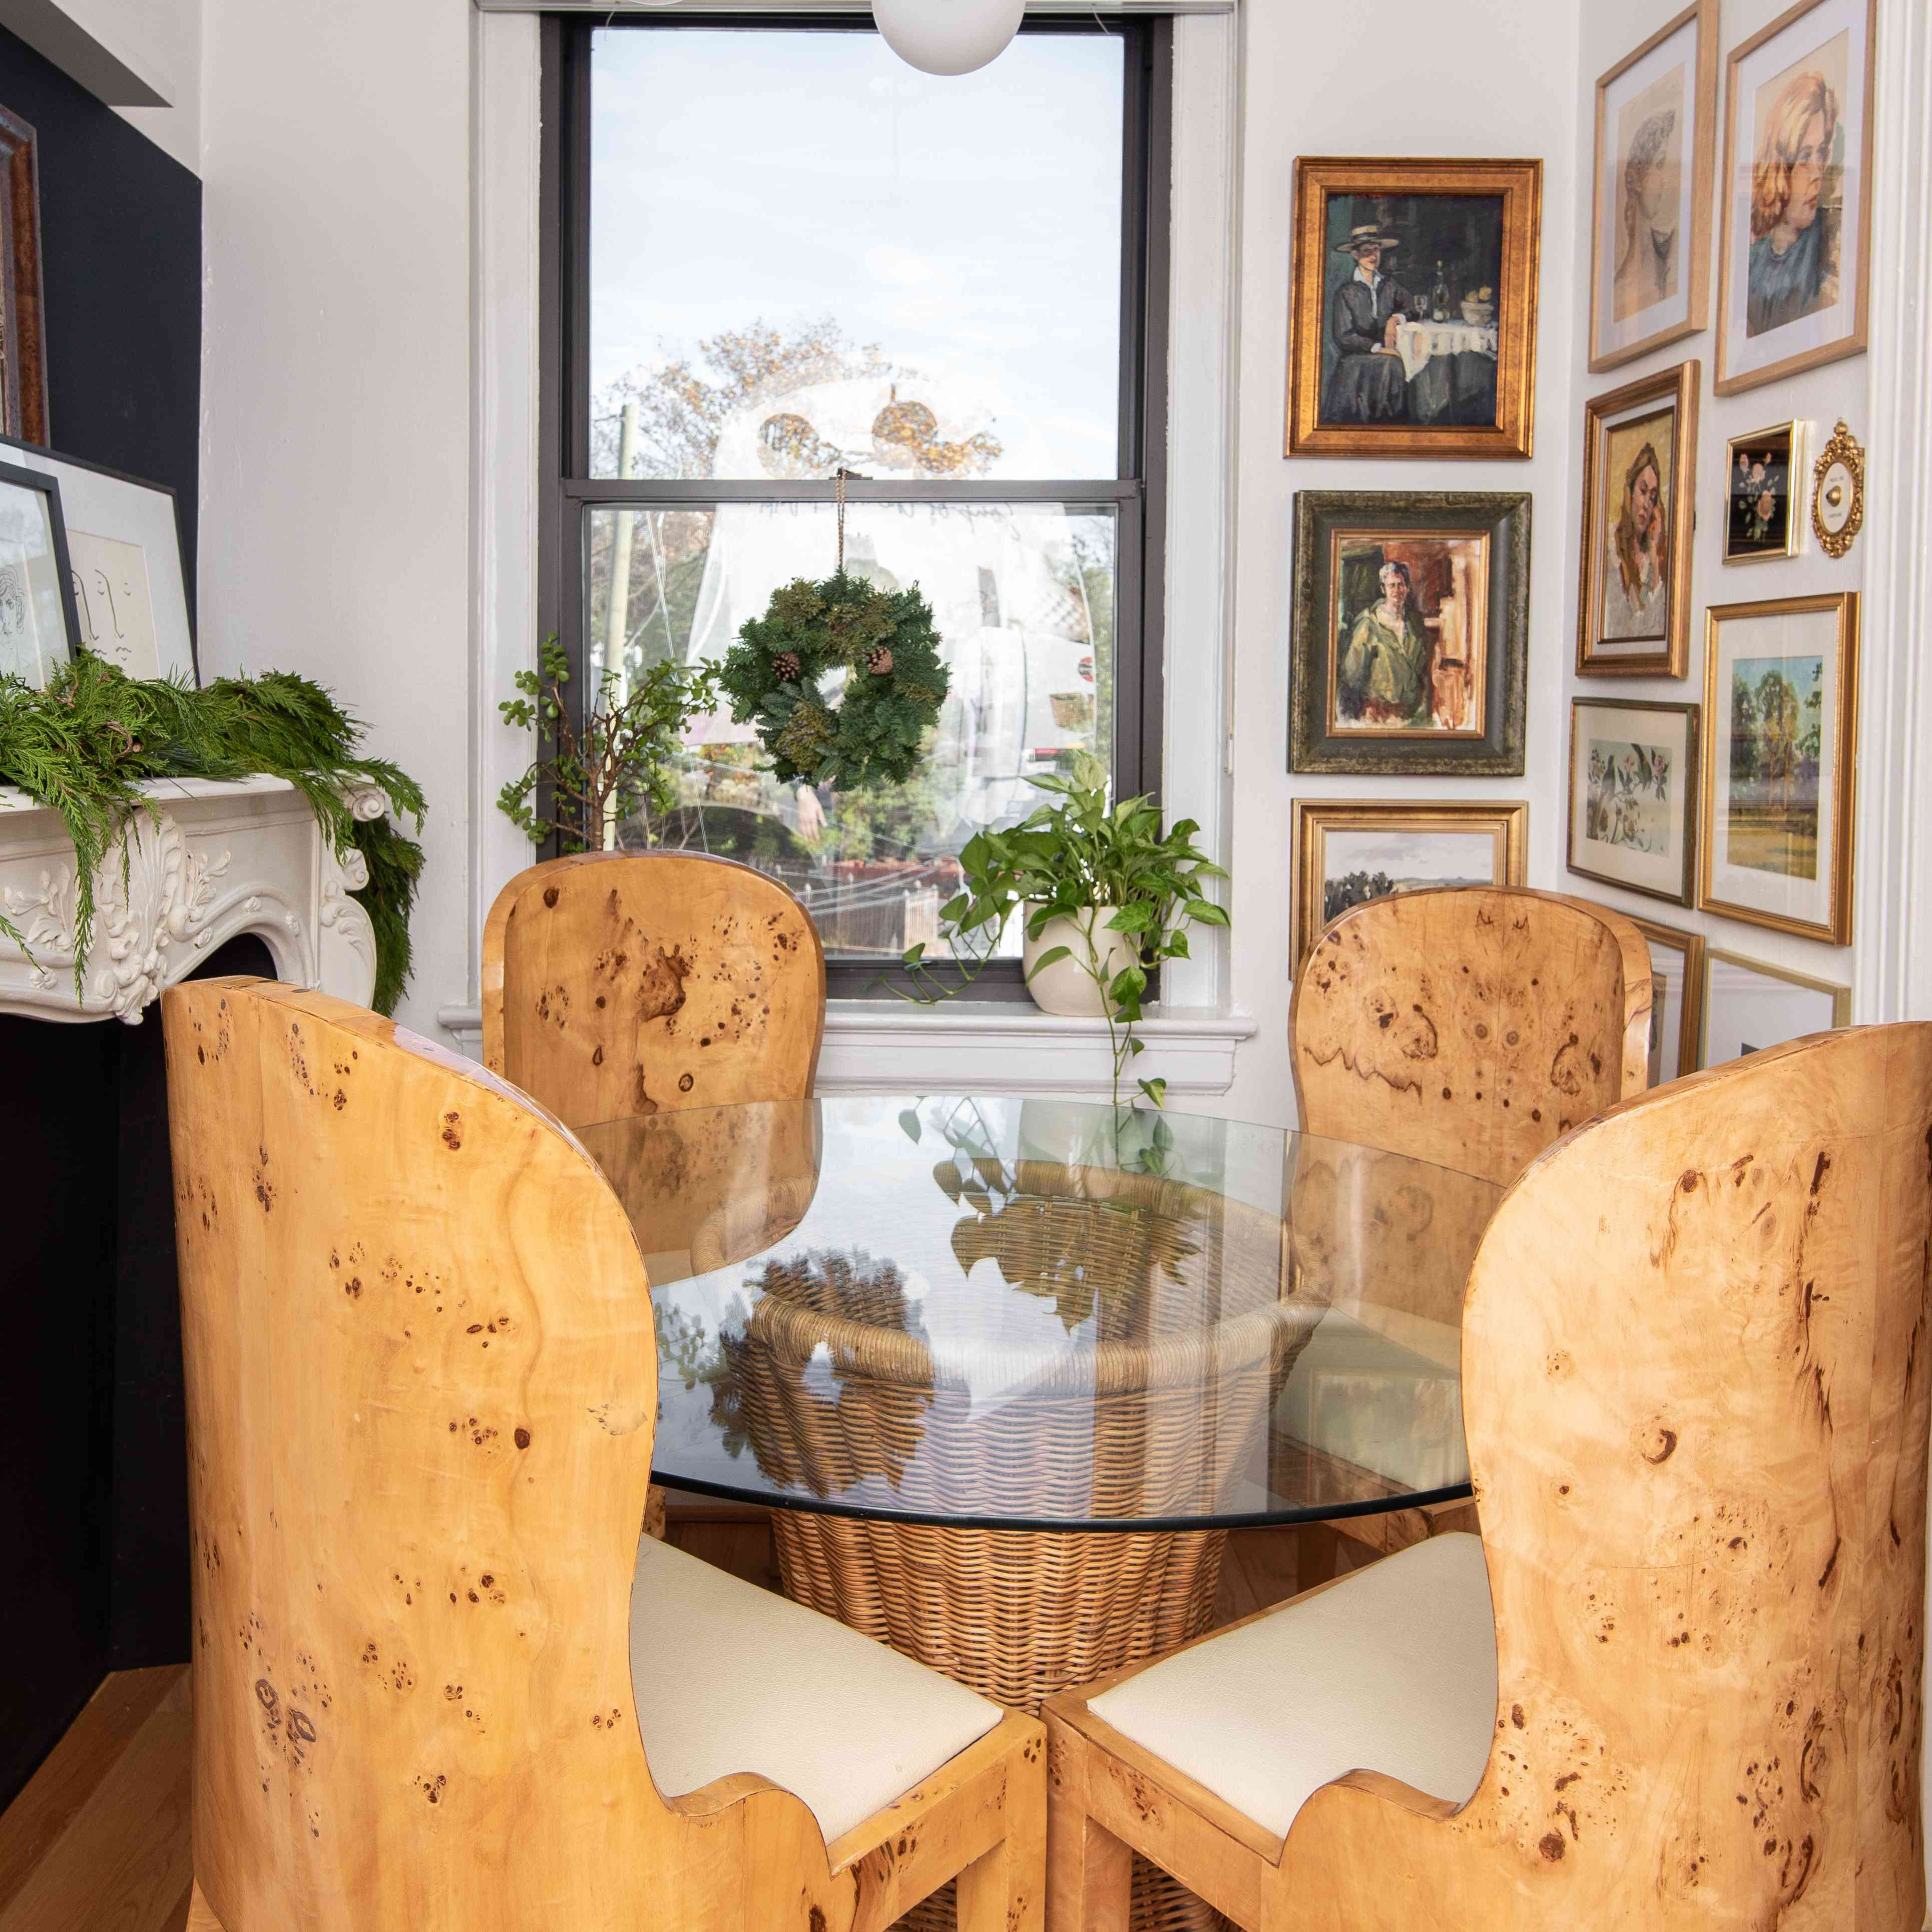 Burl wood dining chairs at table.